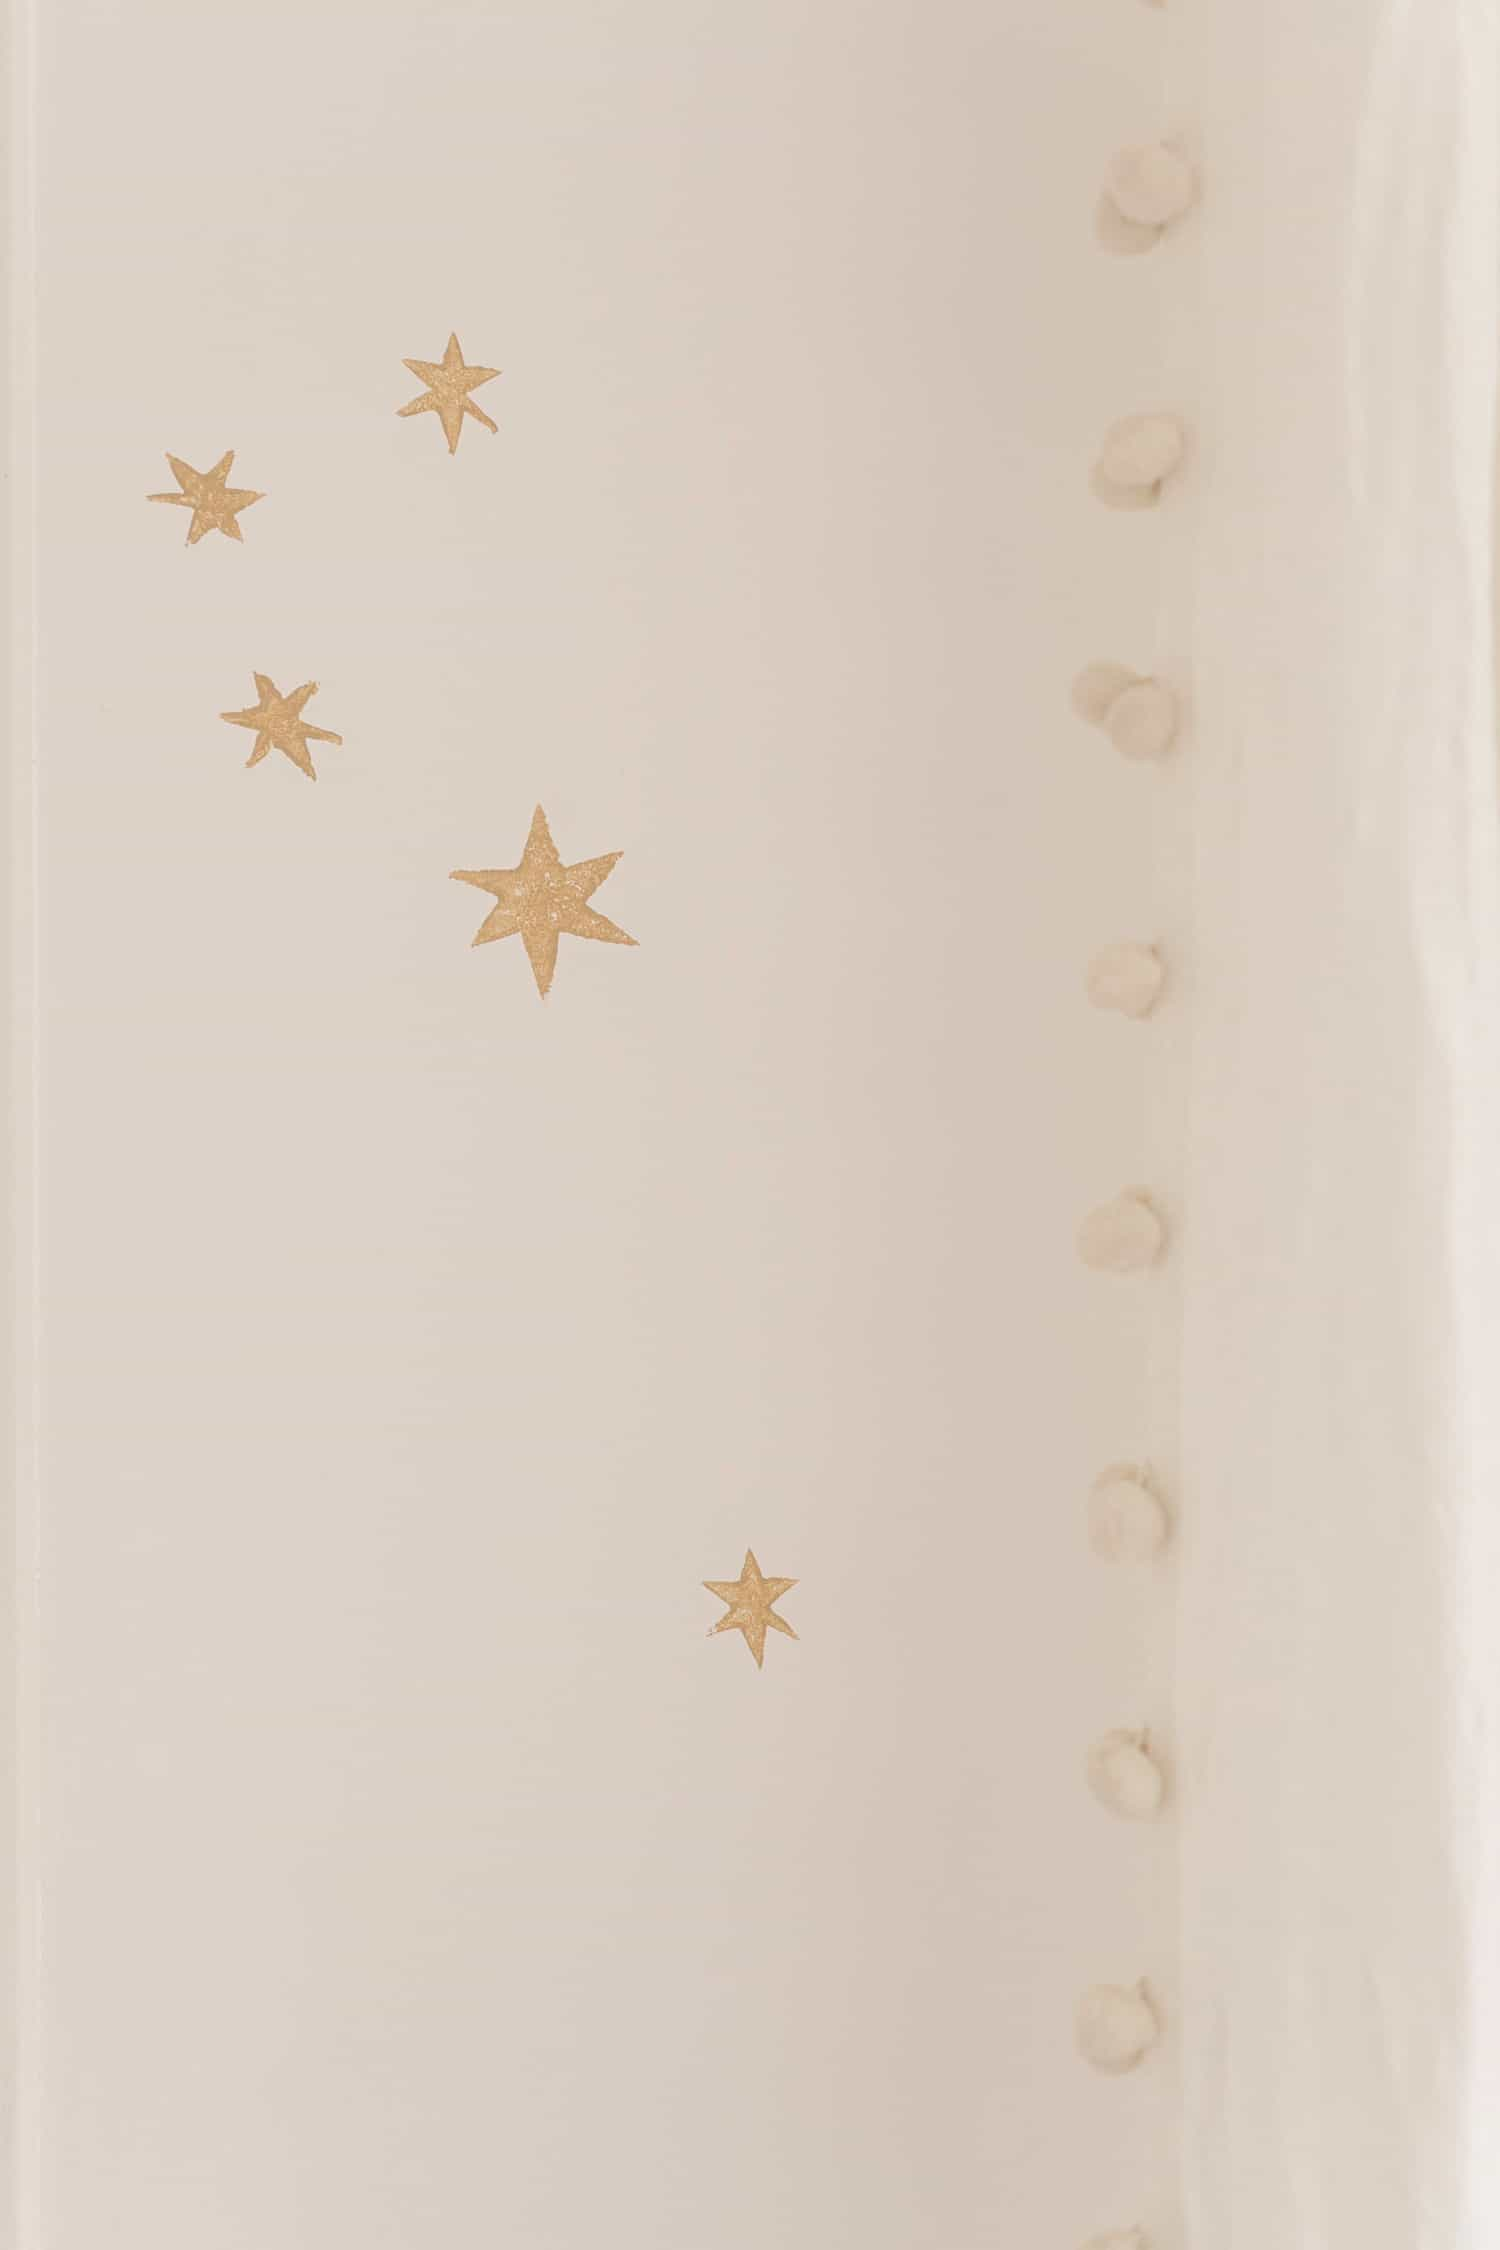 Stamped Star Wall DIY (Money Saving Wallpaper Alternative)